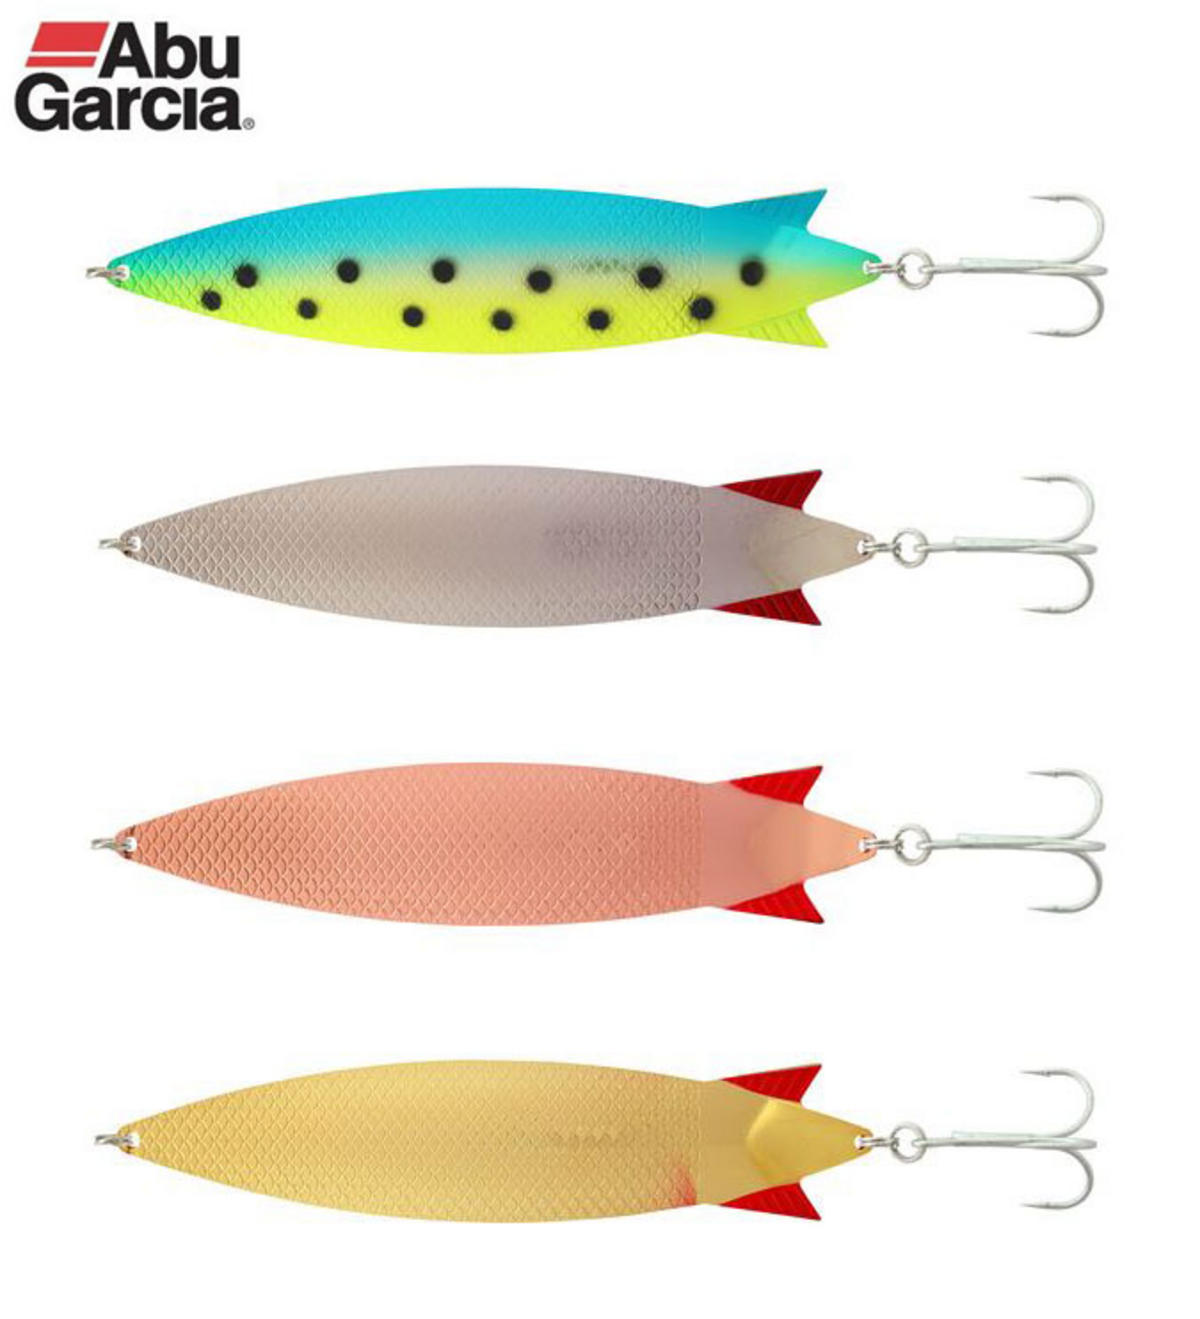 ABU GARCIA SPOON TOBY MAGNUM LURES 60g ALL COLOURS